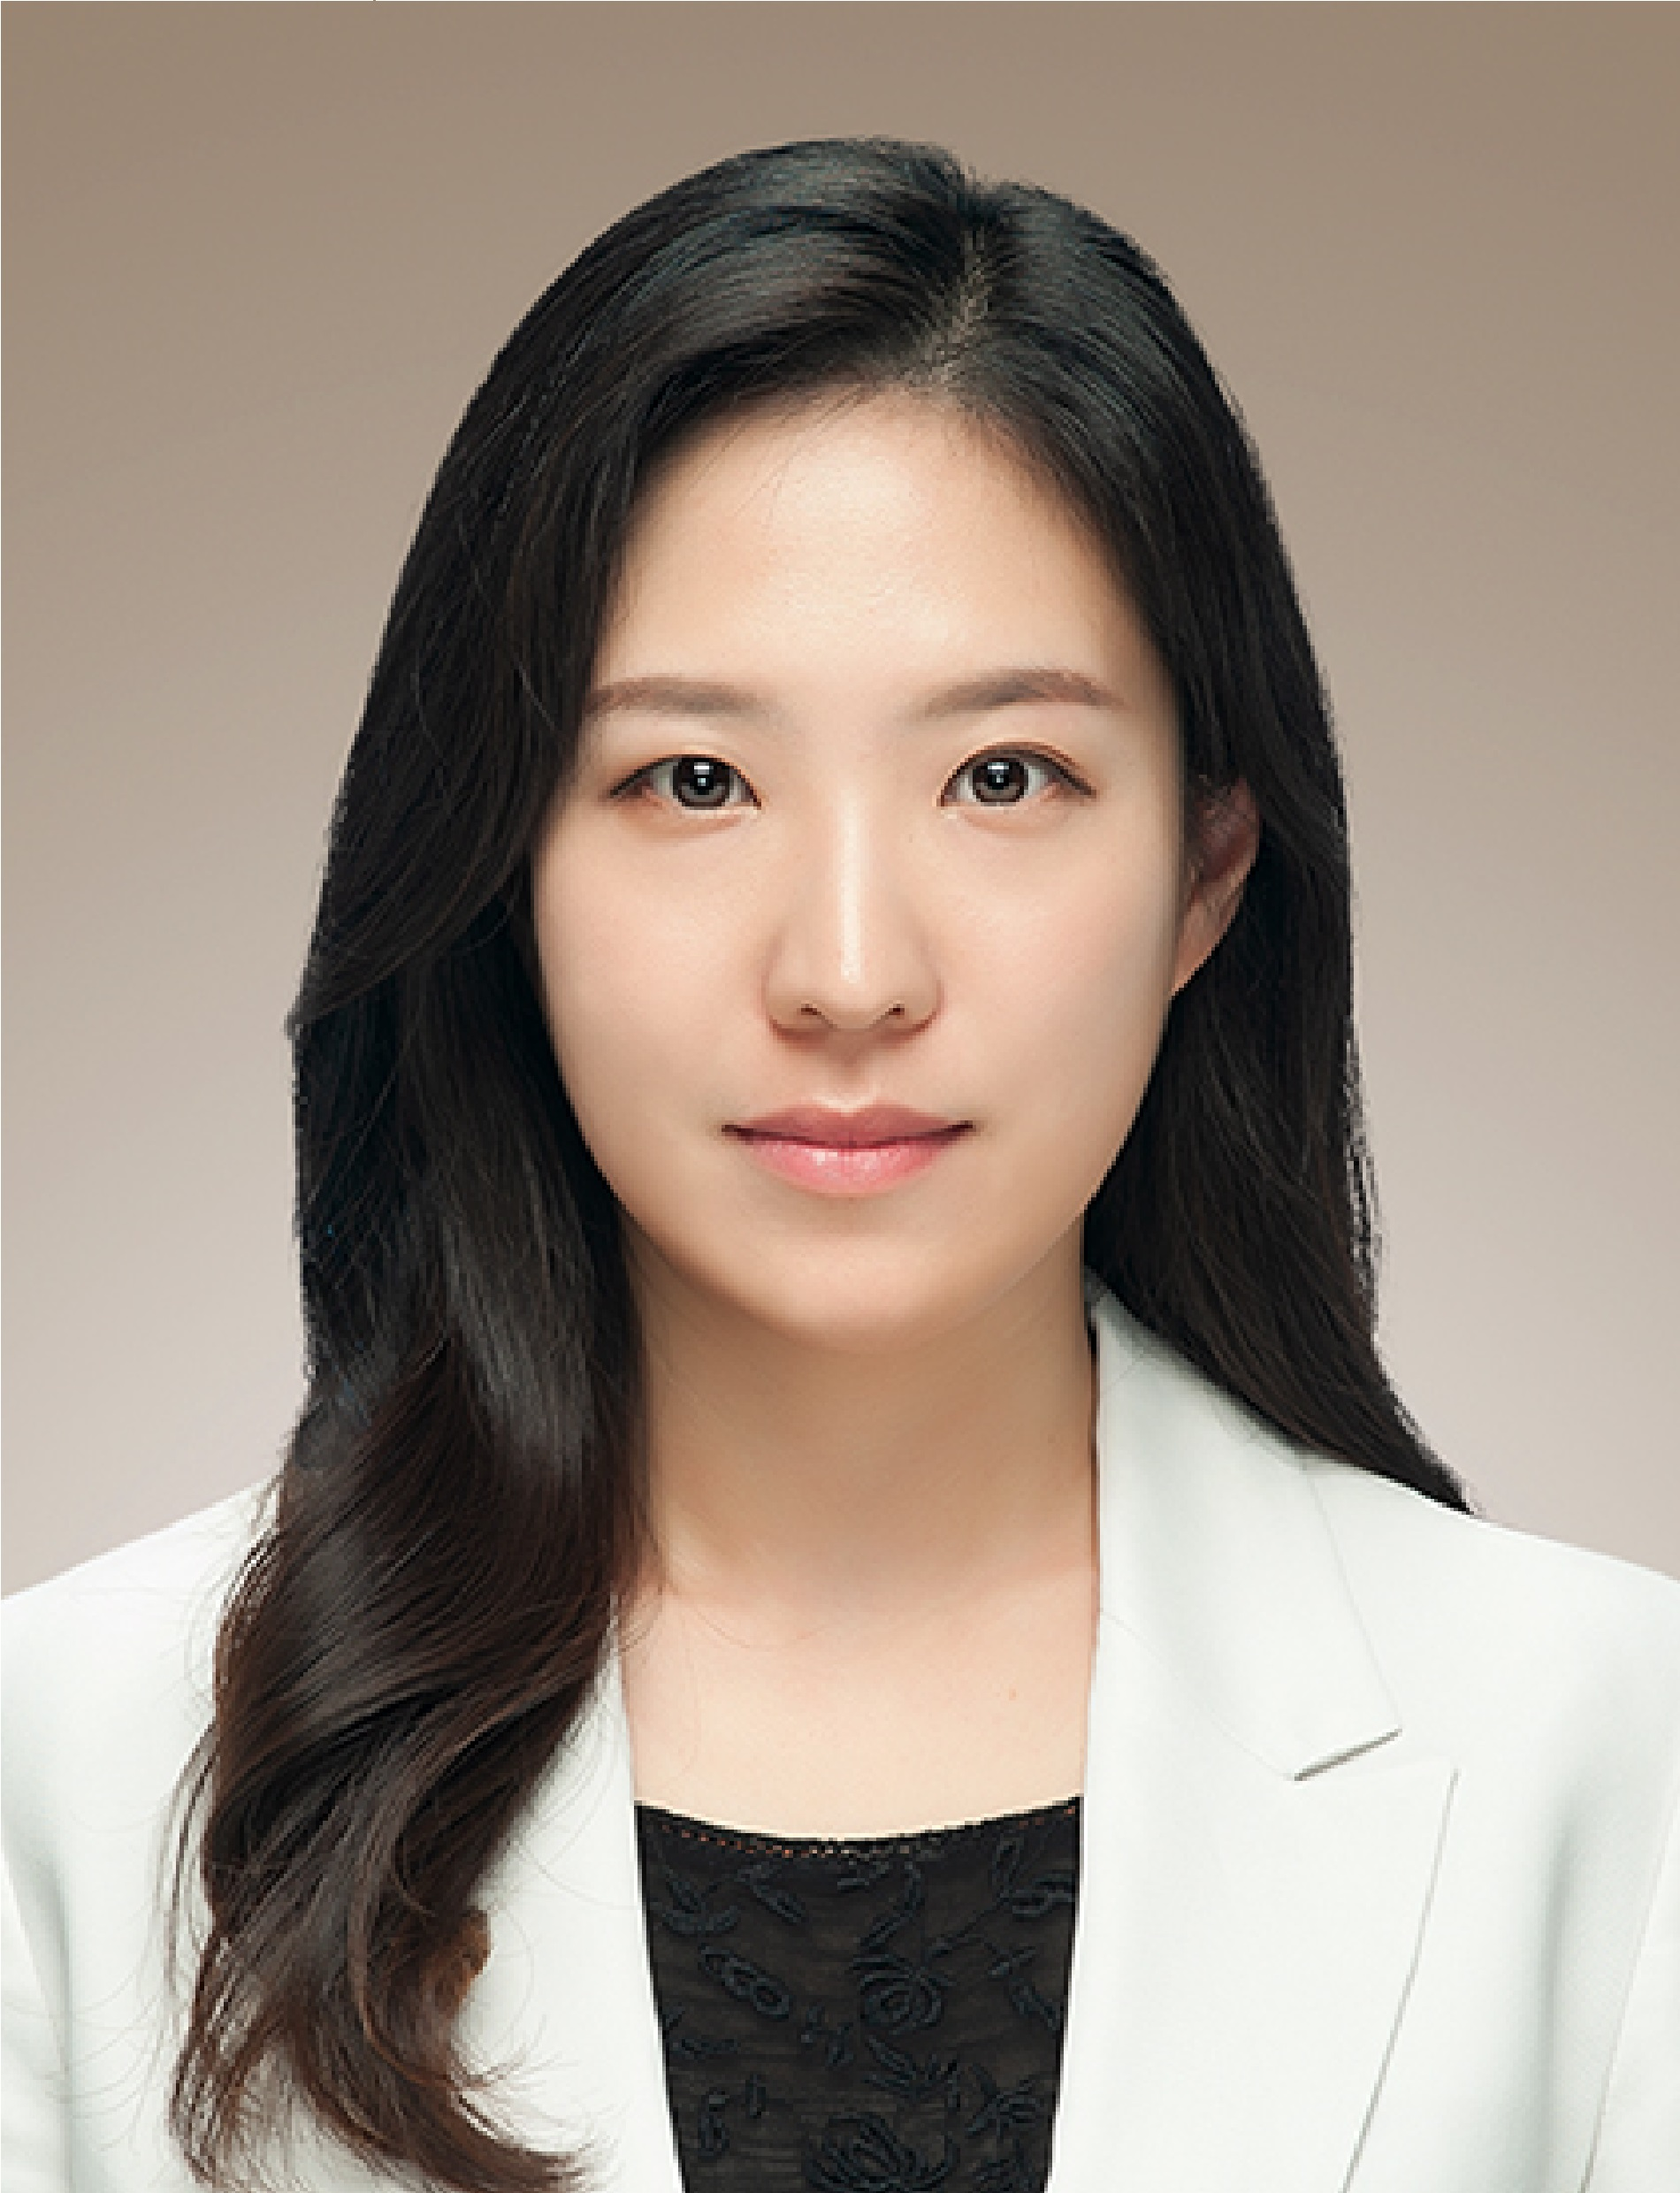 Photo of Seung Ah Lee